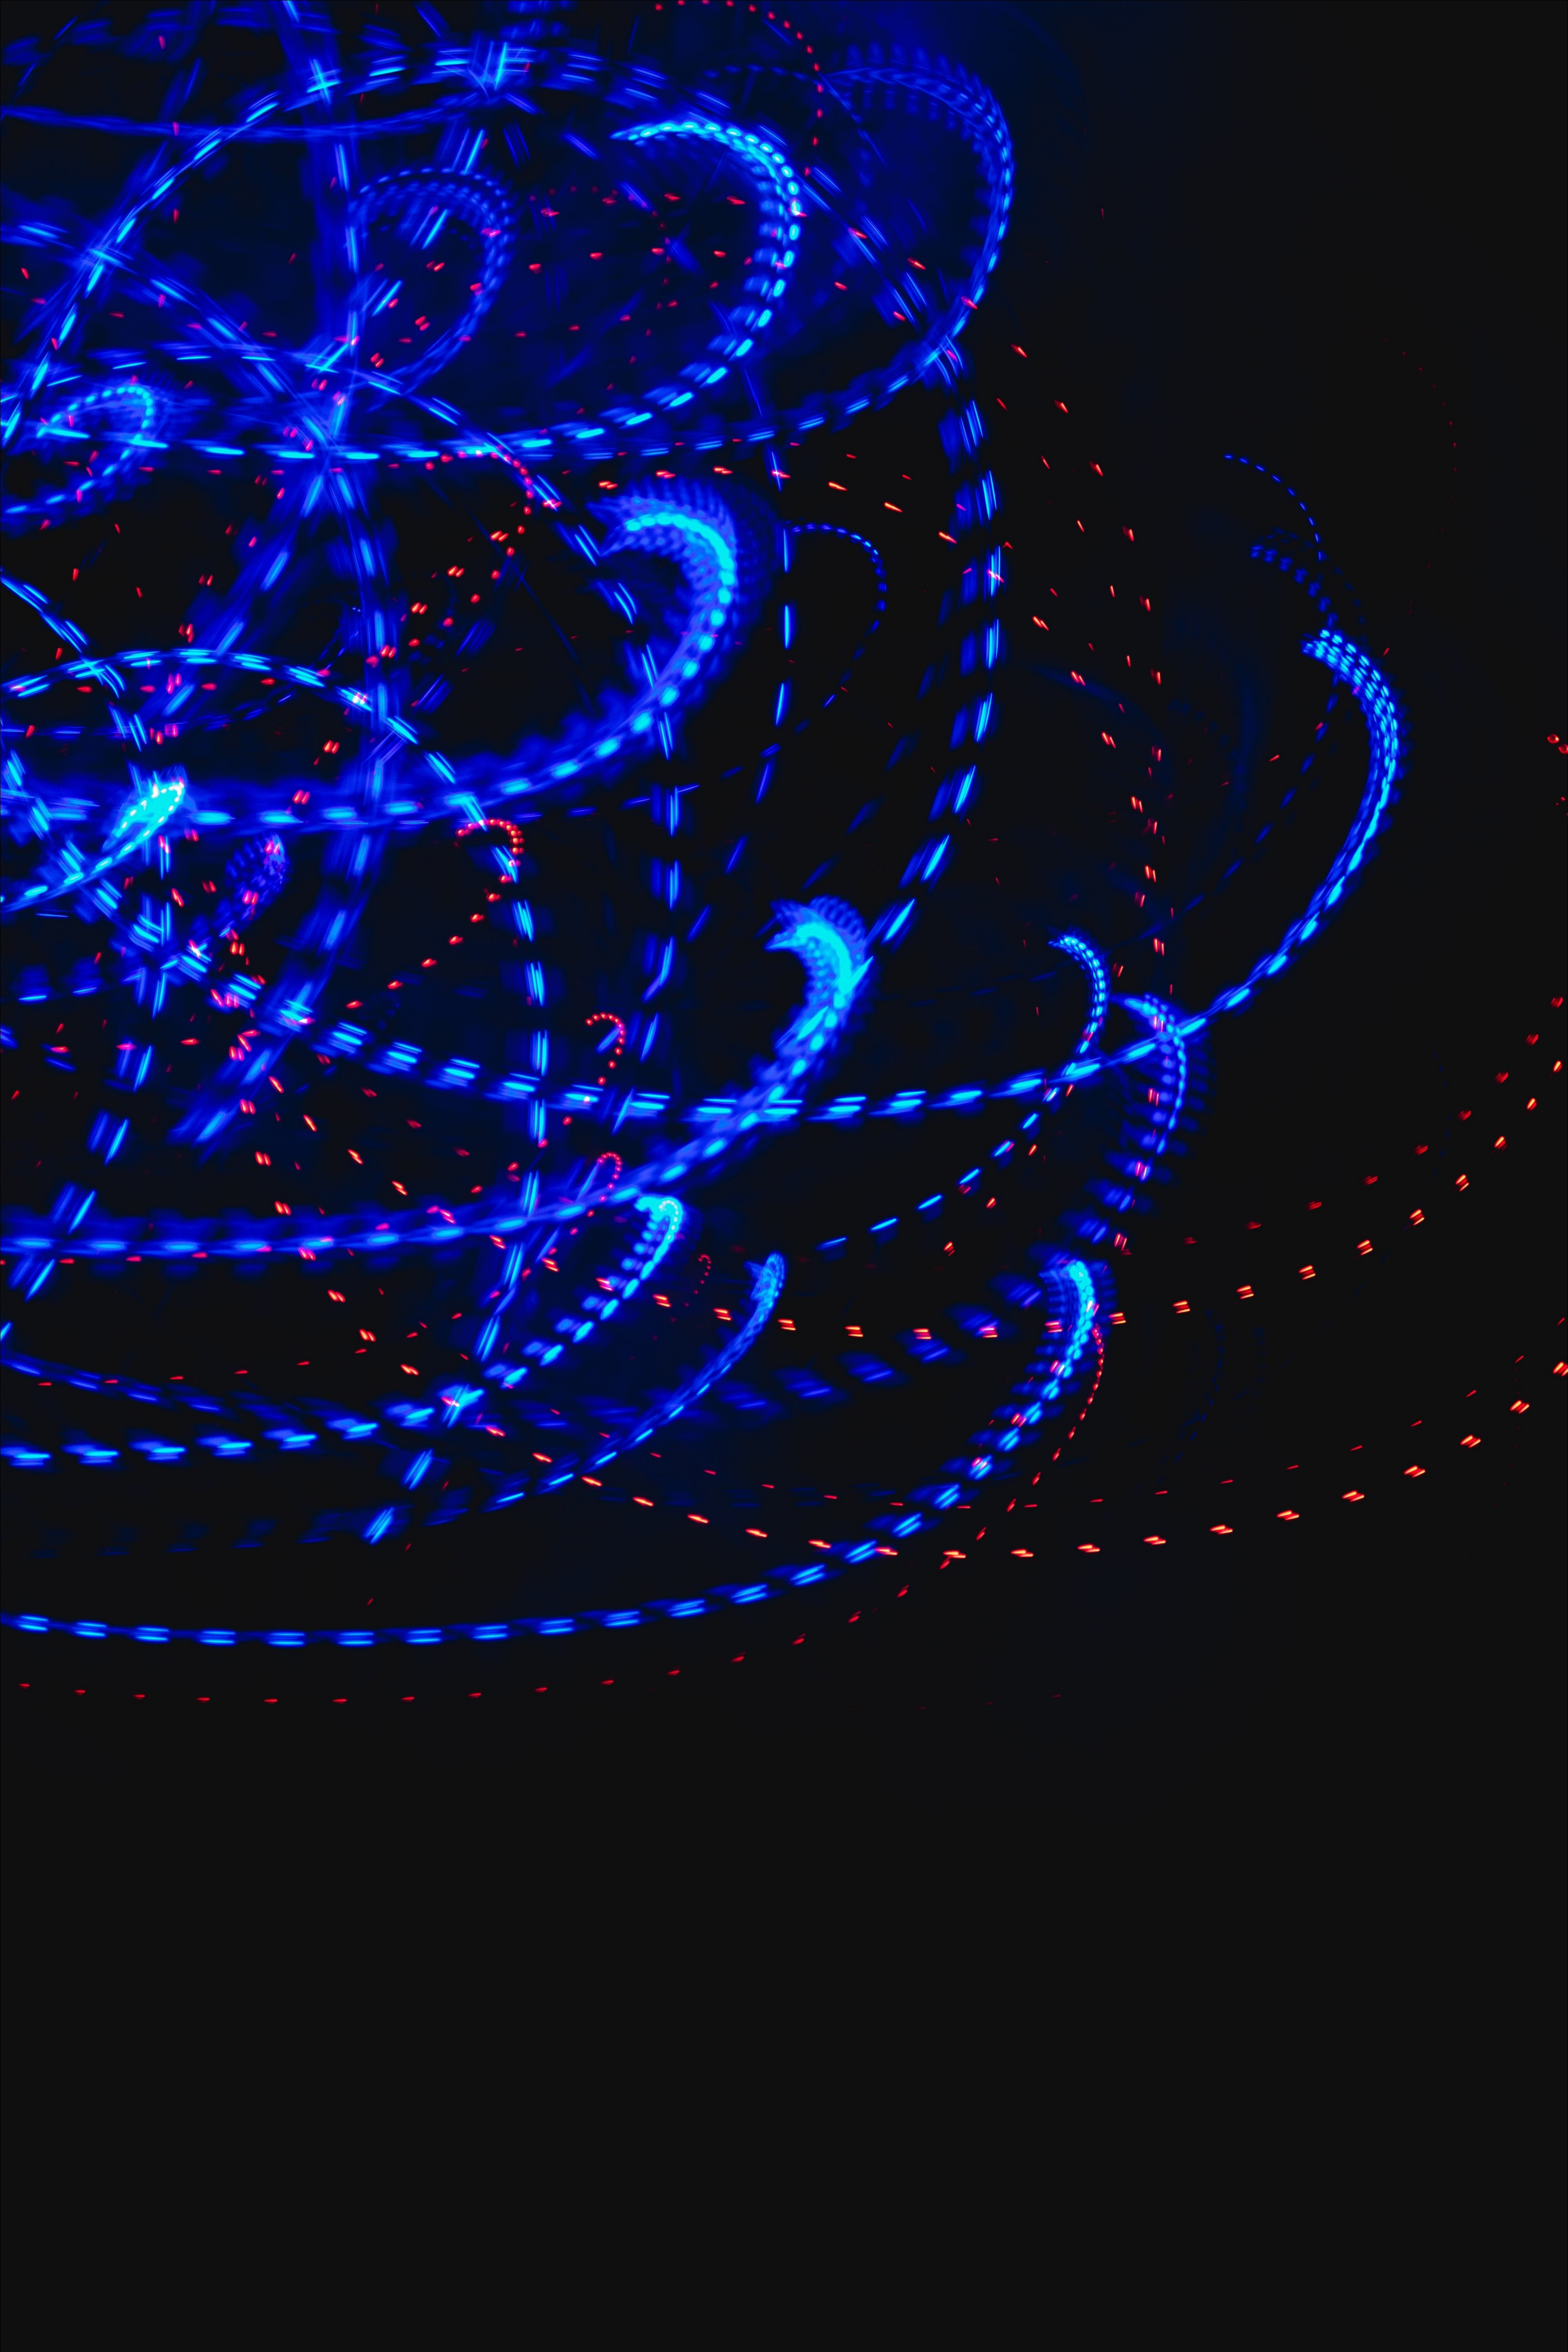 102222 download wallpaper Abstract, Lines, Wavy, Intermittent, Neon, Glow screensavers and pictures for free